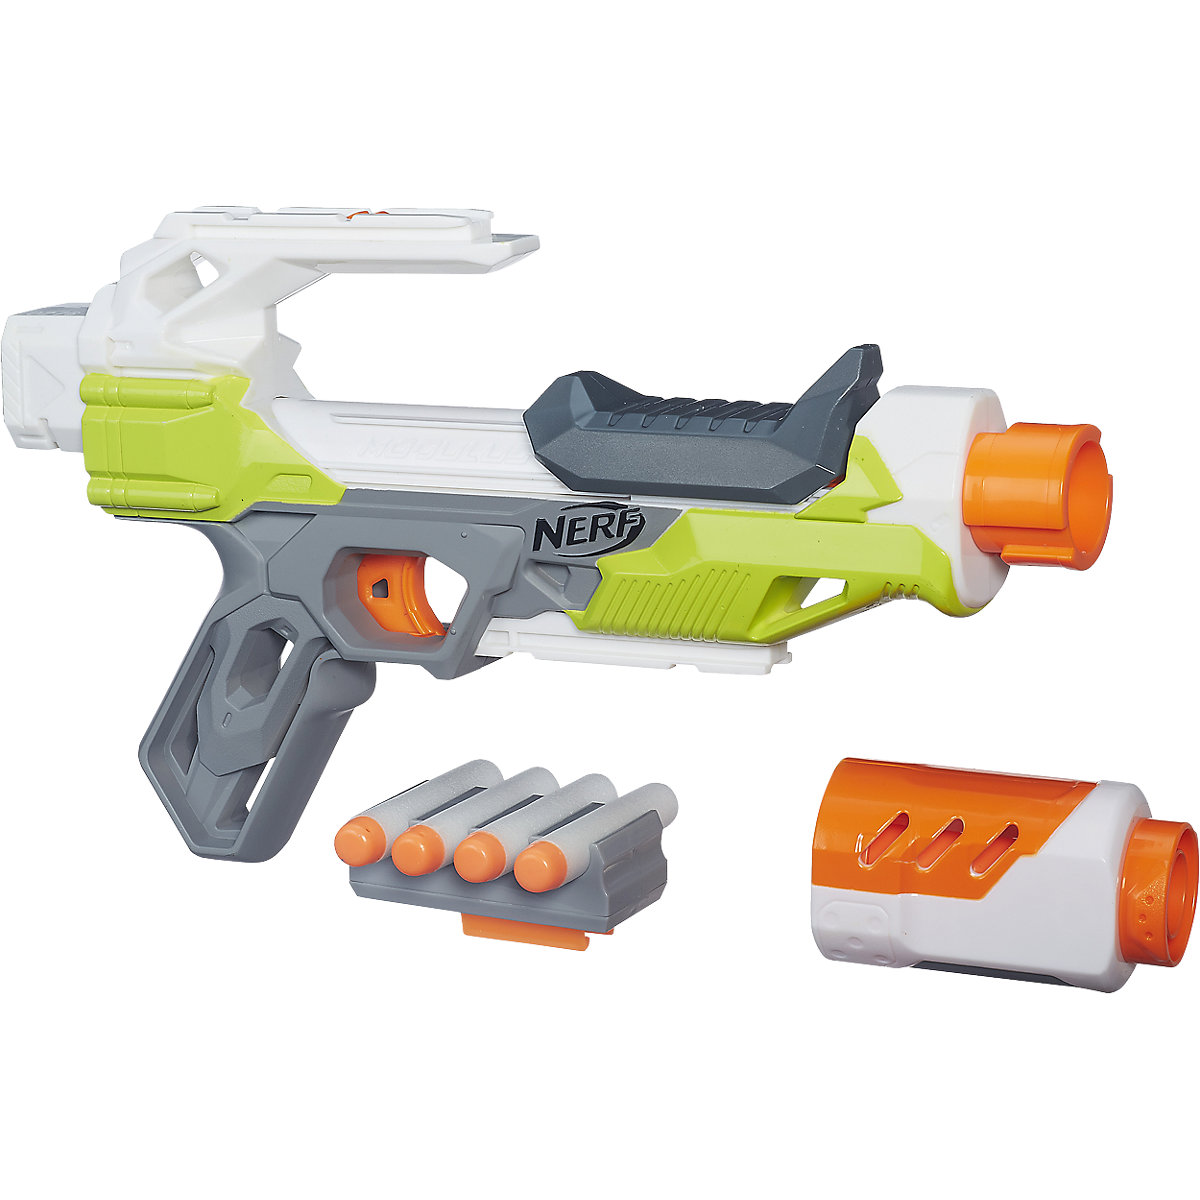 Toy Guns NERF 4306449 Children Kids Toy Gun Weapon Blasters Boys Shooting games Outdoor play tactical x300 pistol gun light 500 lumens high output weapon flashlight fit 20mm picatinny weaver rail